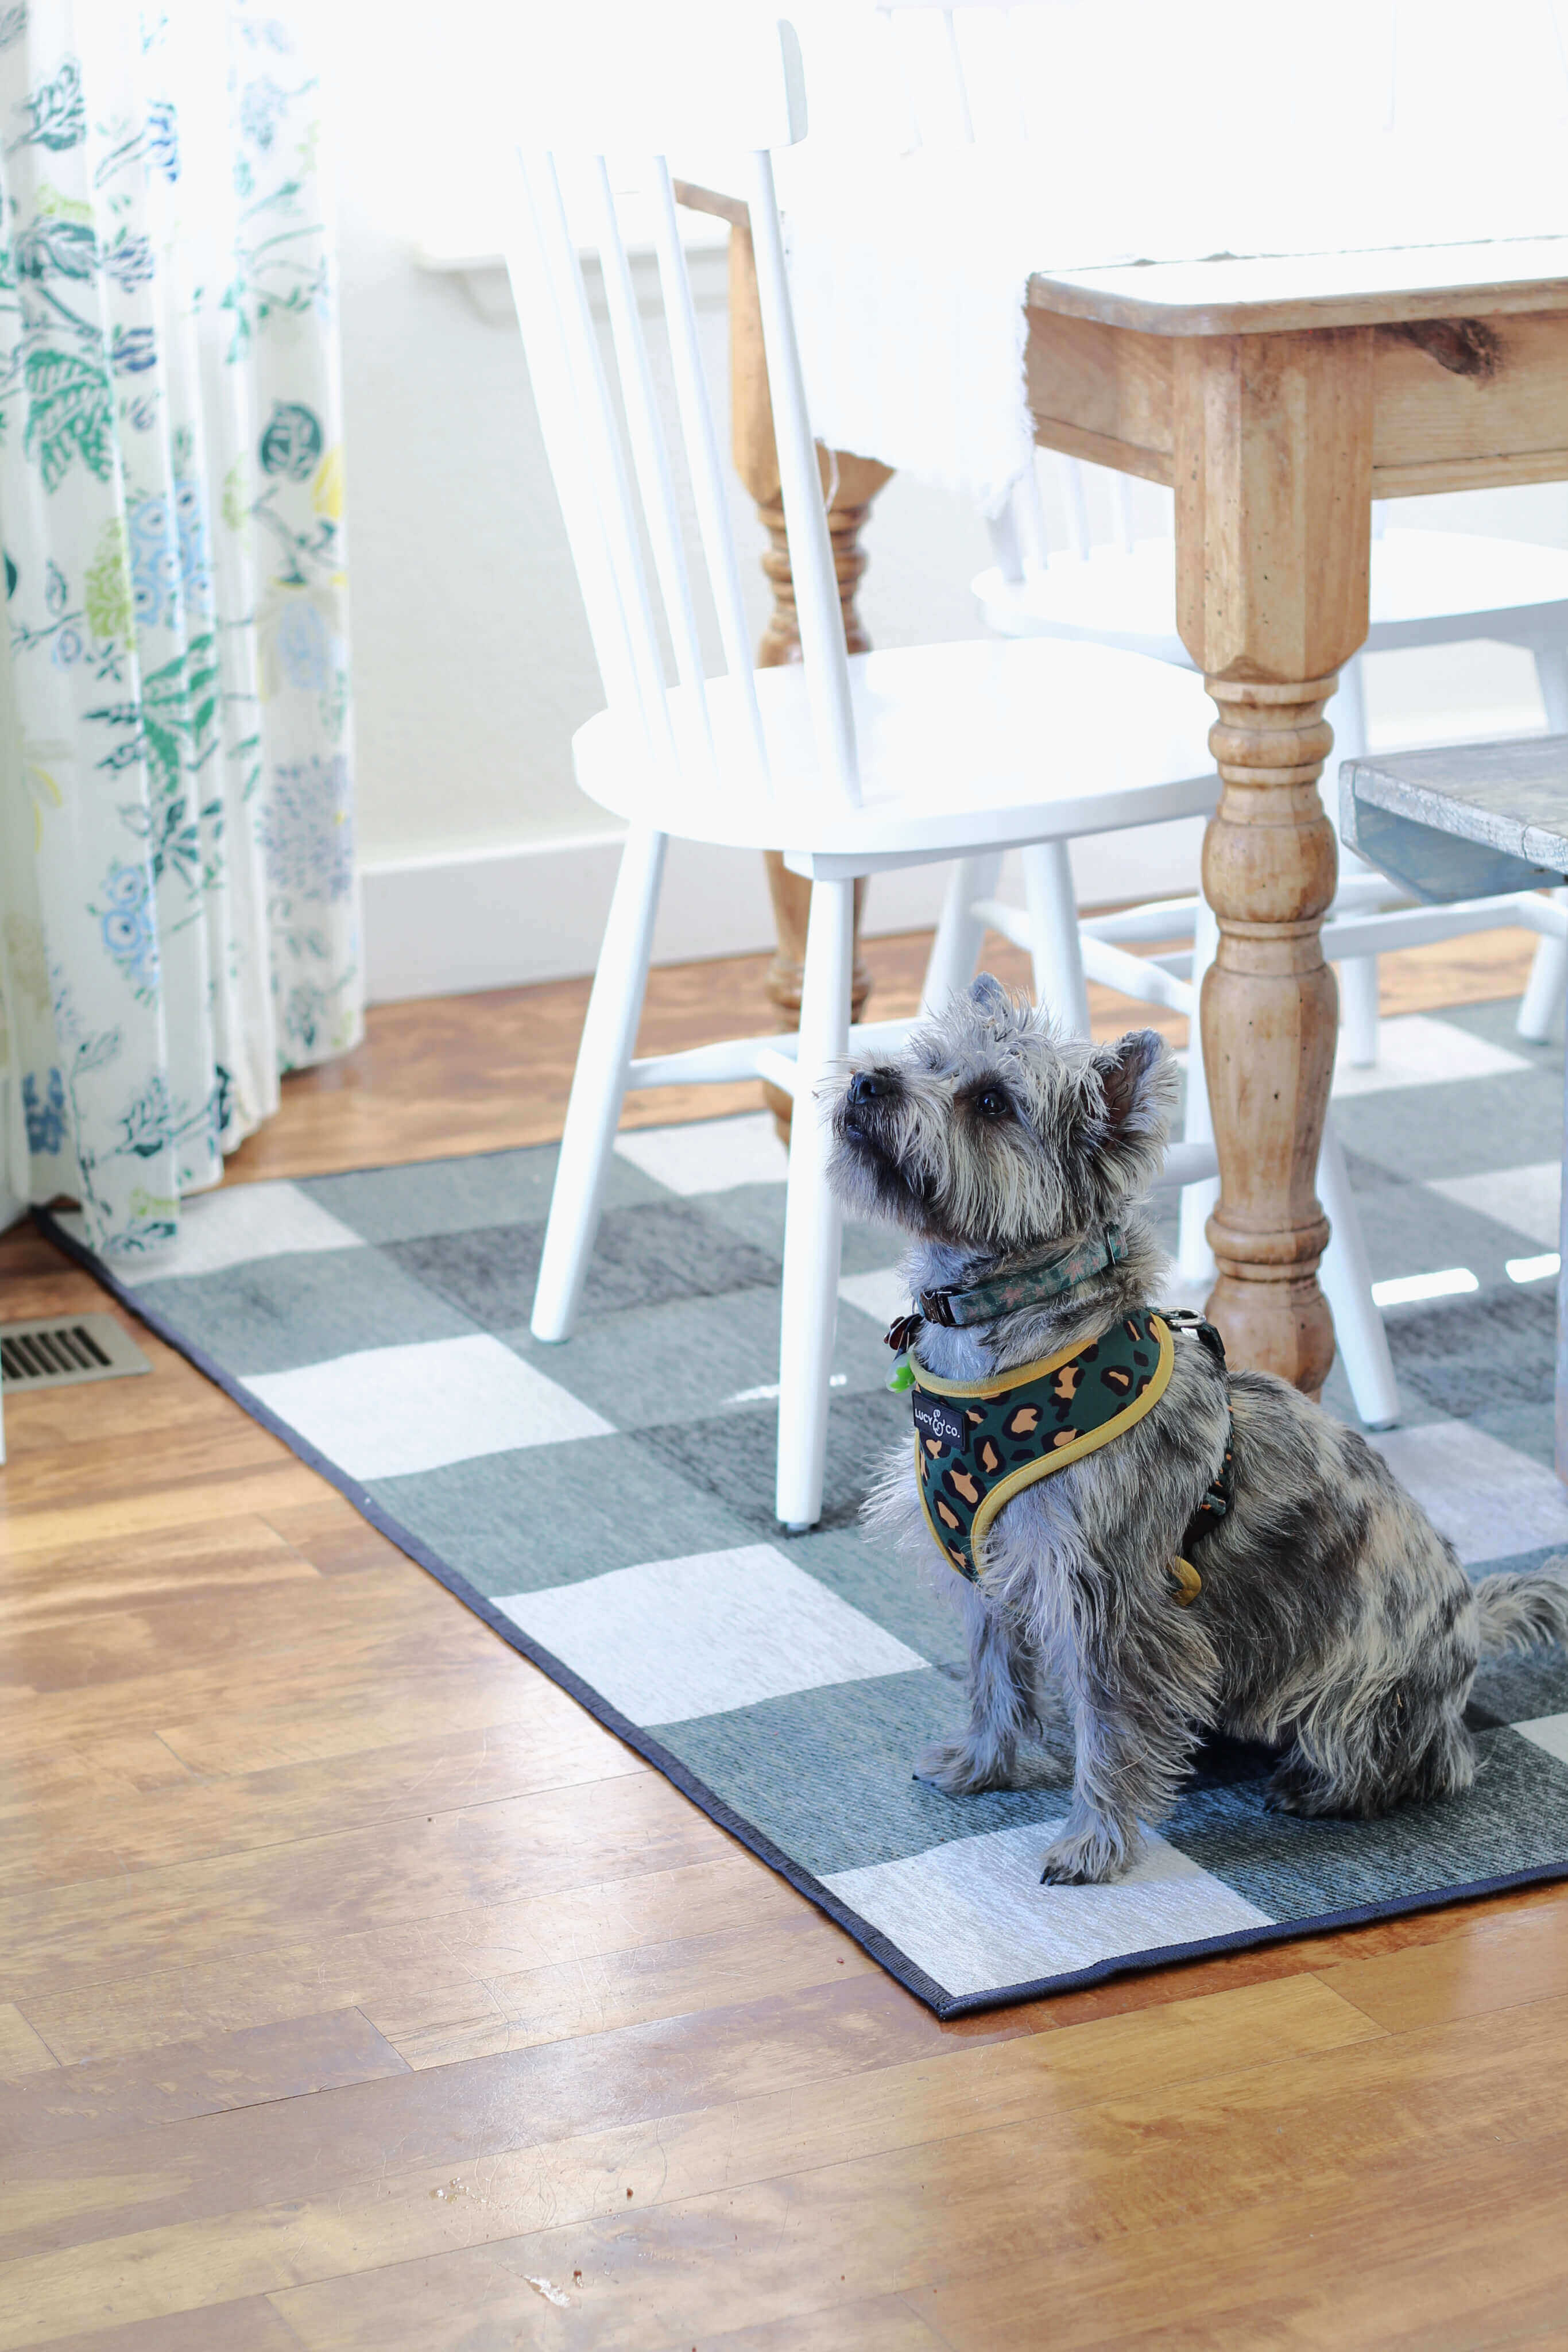 Our Ruggable is beautiful and practical for our kitchen. Dog and mom approved!